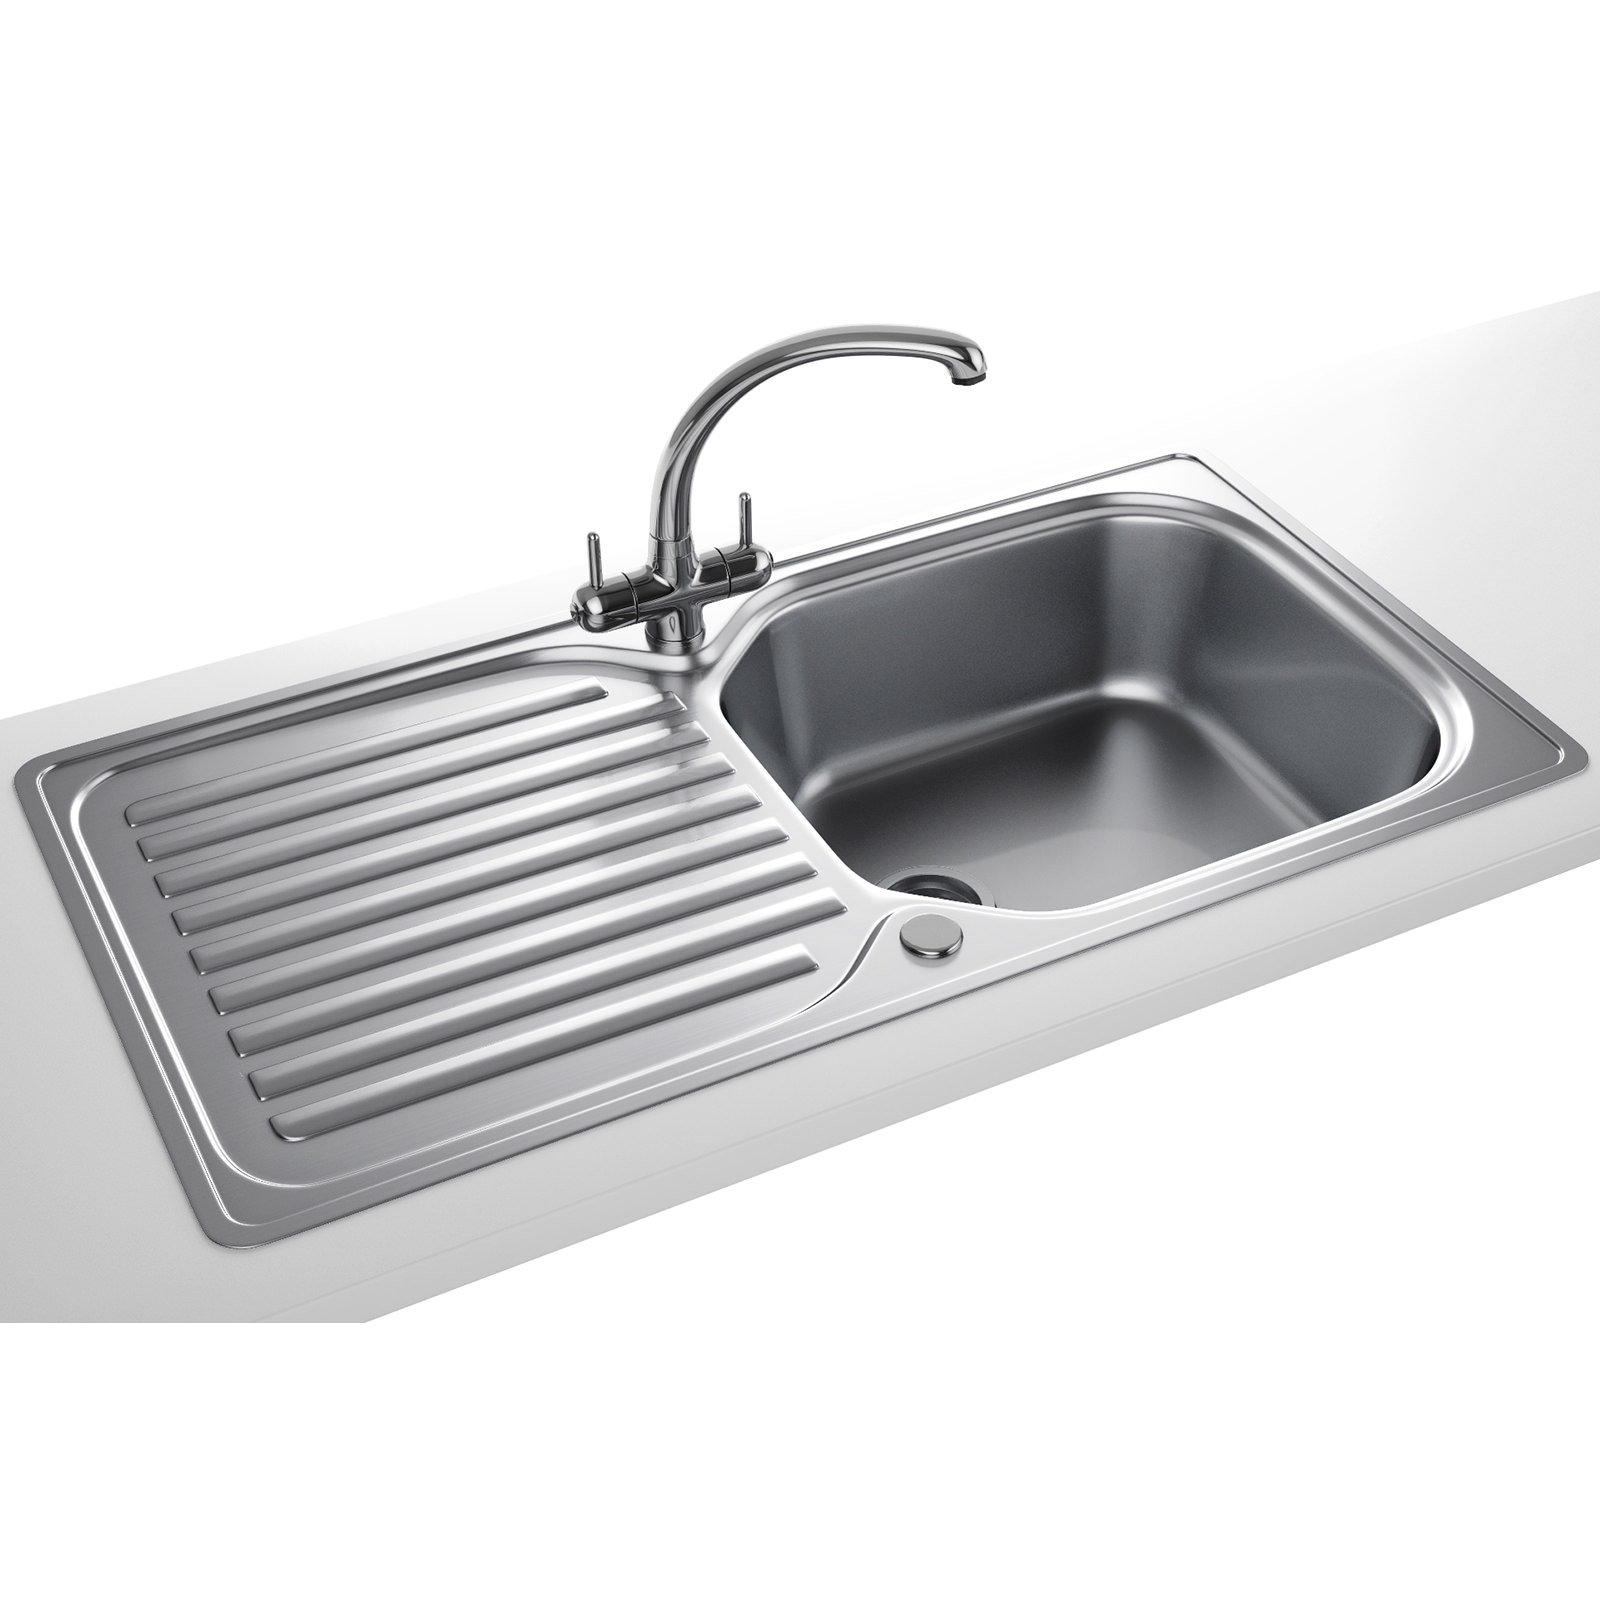 Franke Stainless Steel Sink : Franke Elba Propack ELN 611 96 Stainless Steel Kitchen Sink And Tap